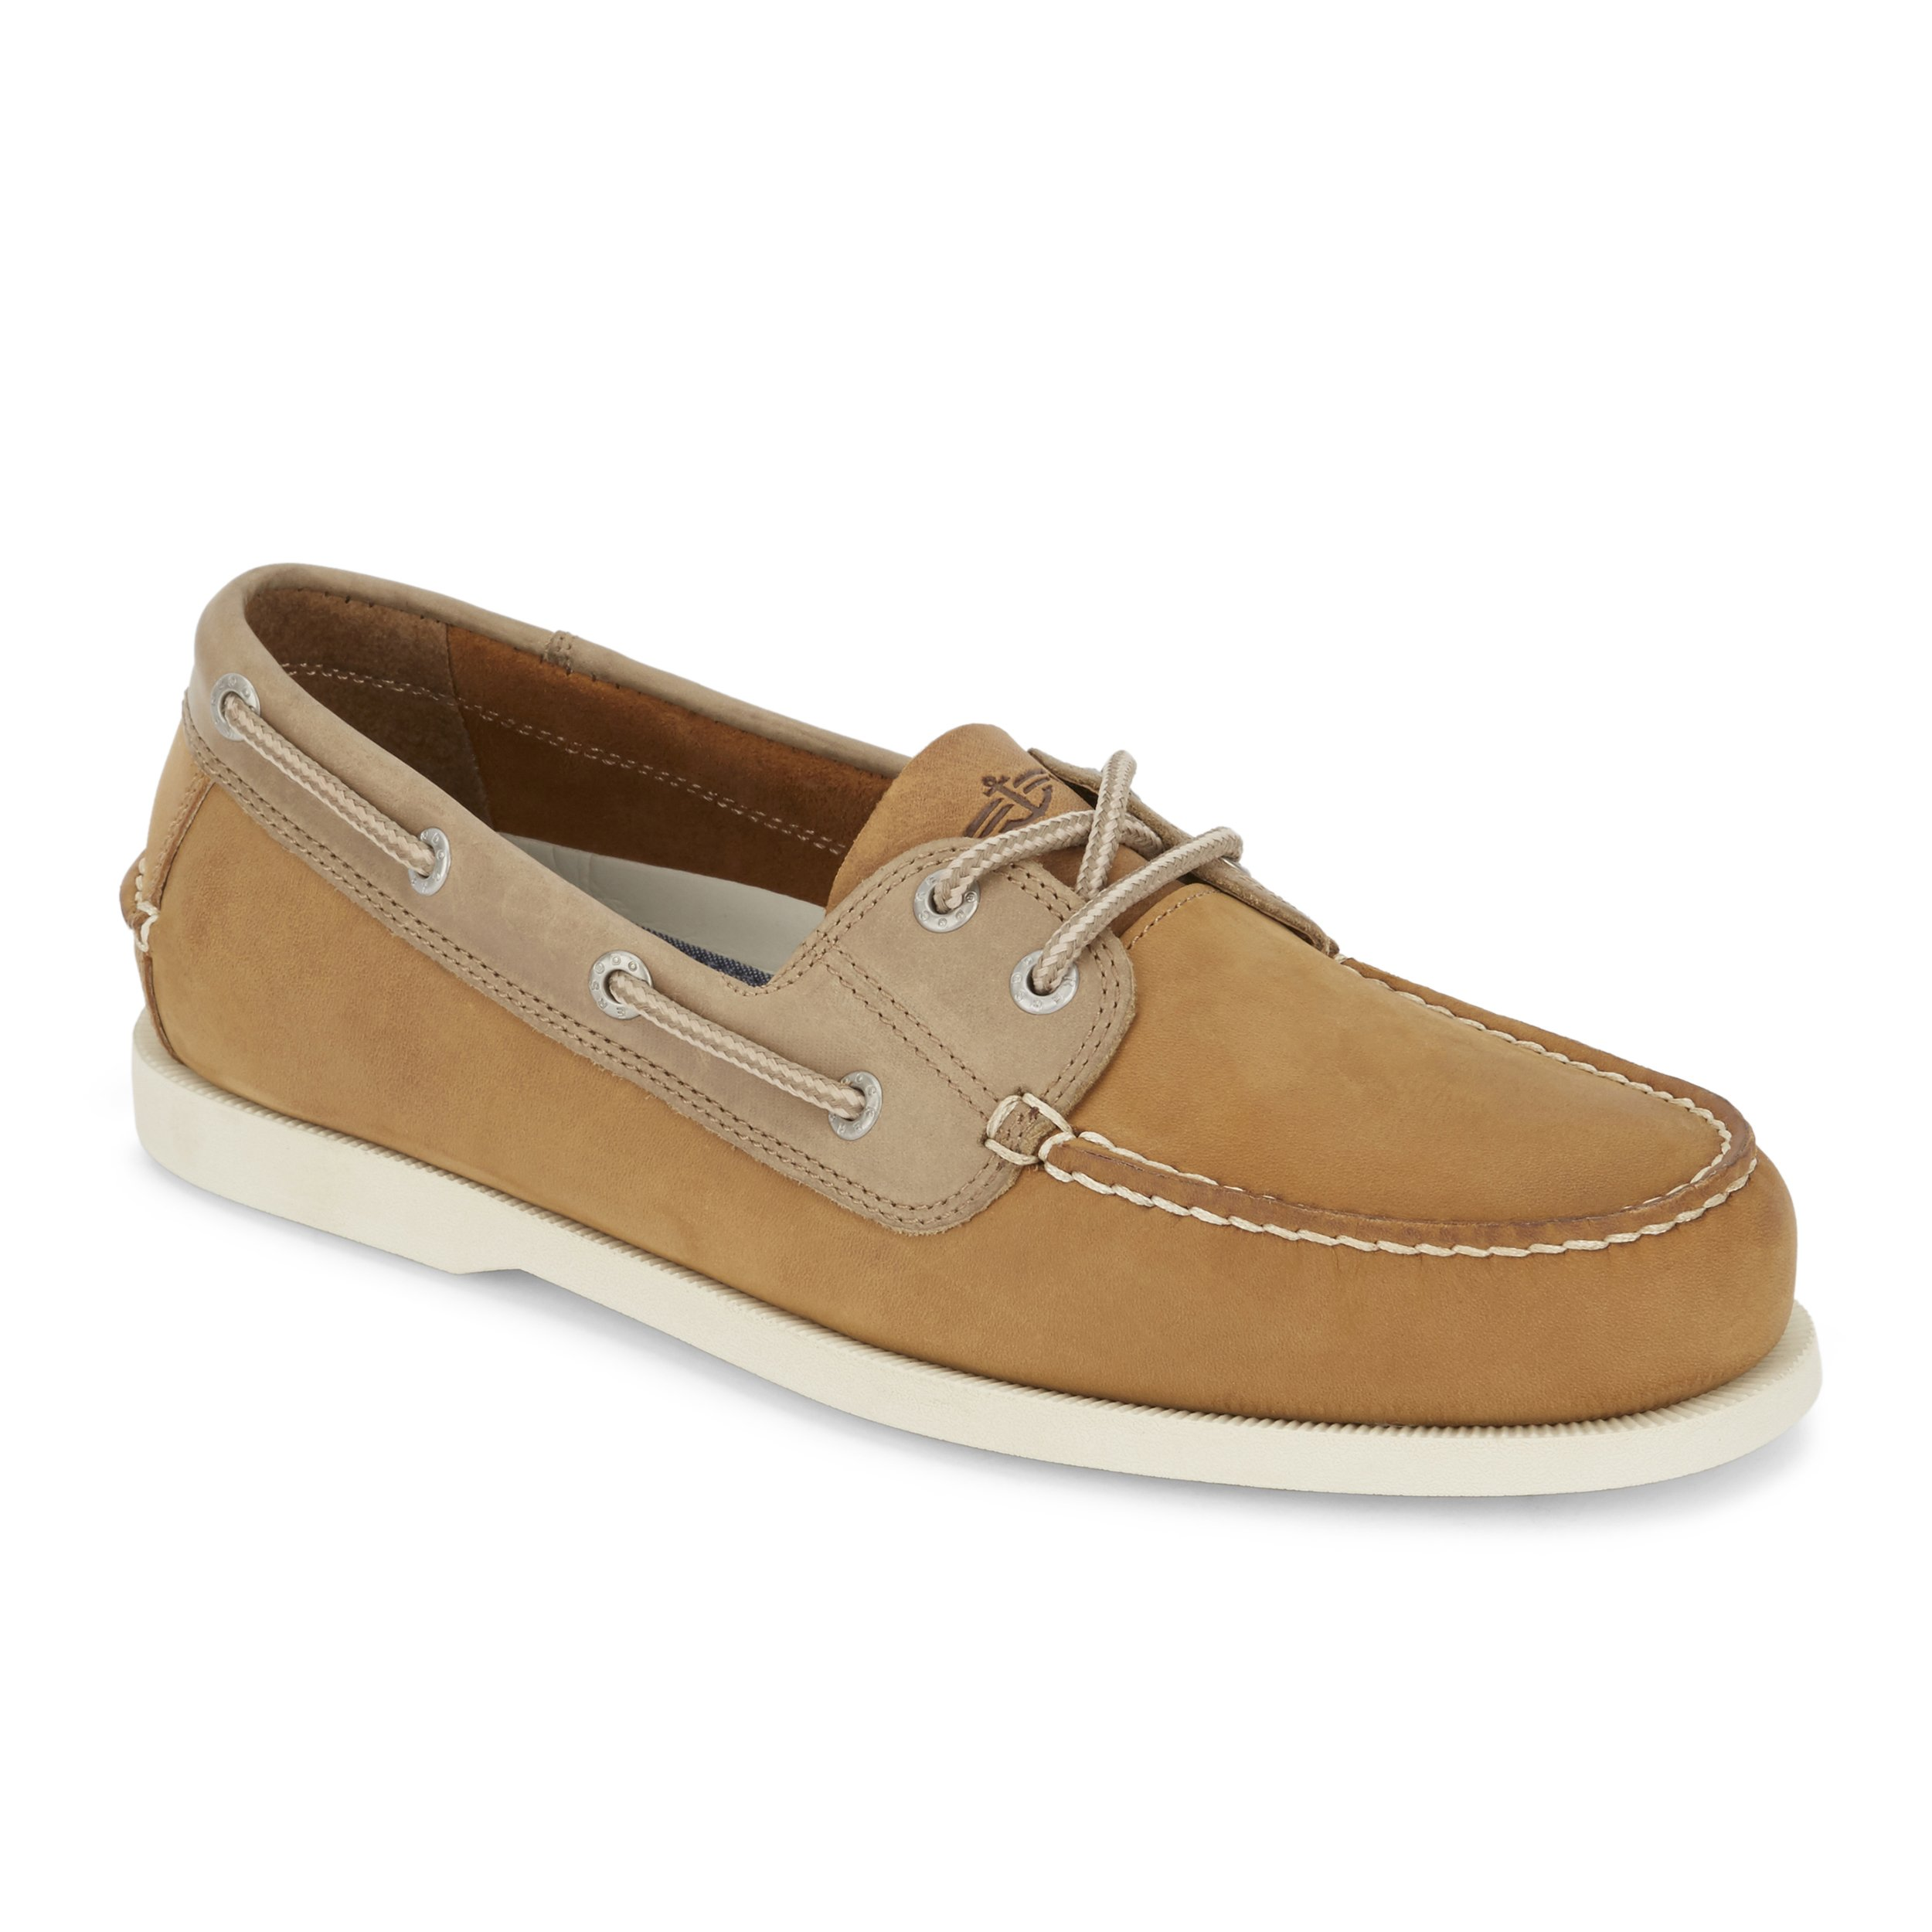 Dockers Mens Vargas Leather Casual Classic Boat Shoe